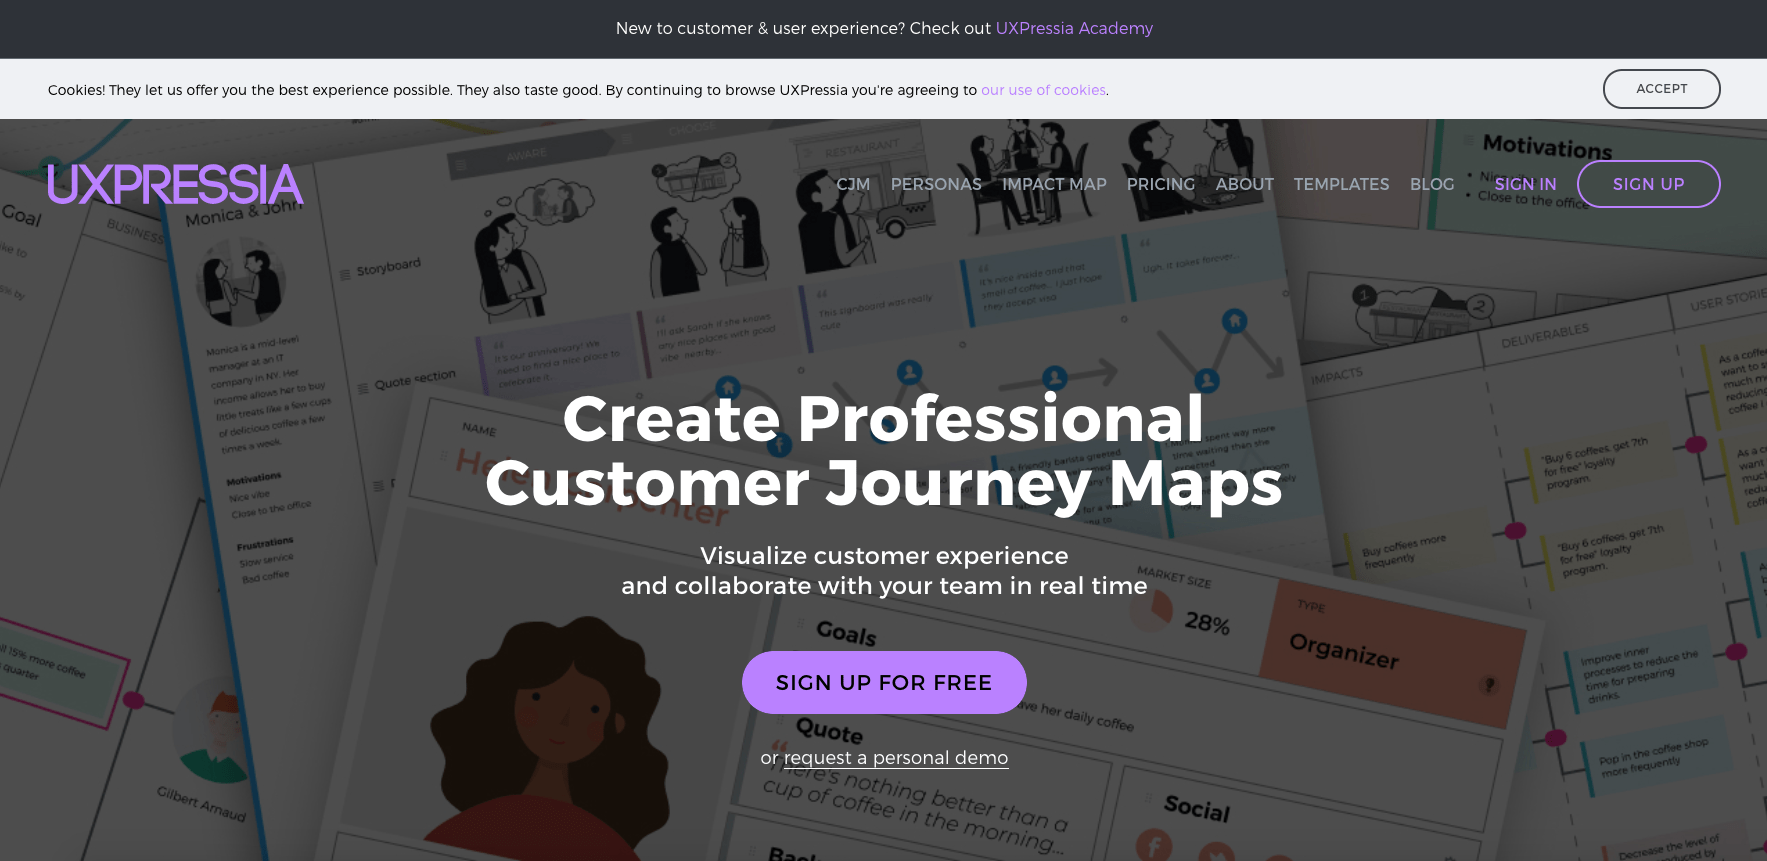 UX-Customer-Journey-Mapping-Tool-UXPressia